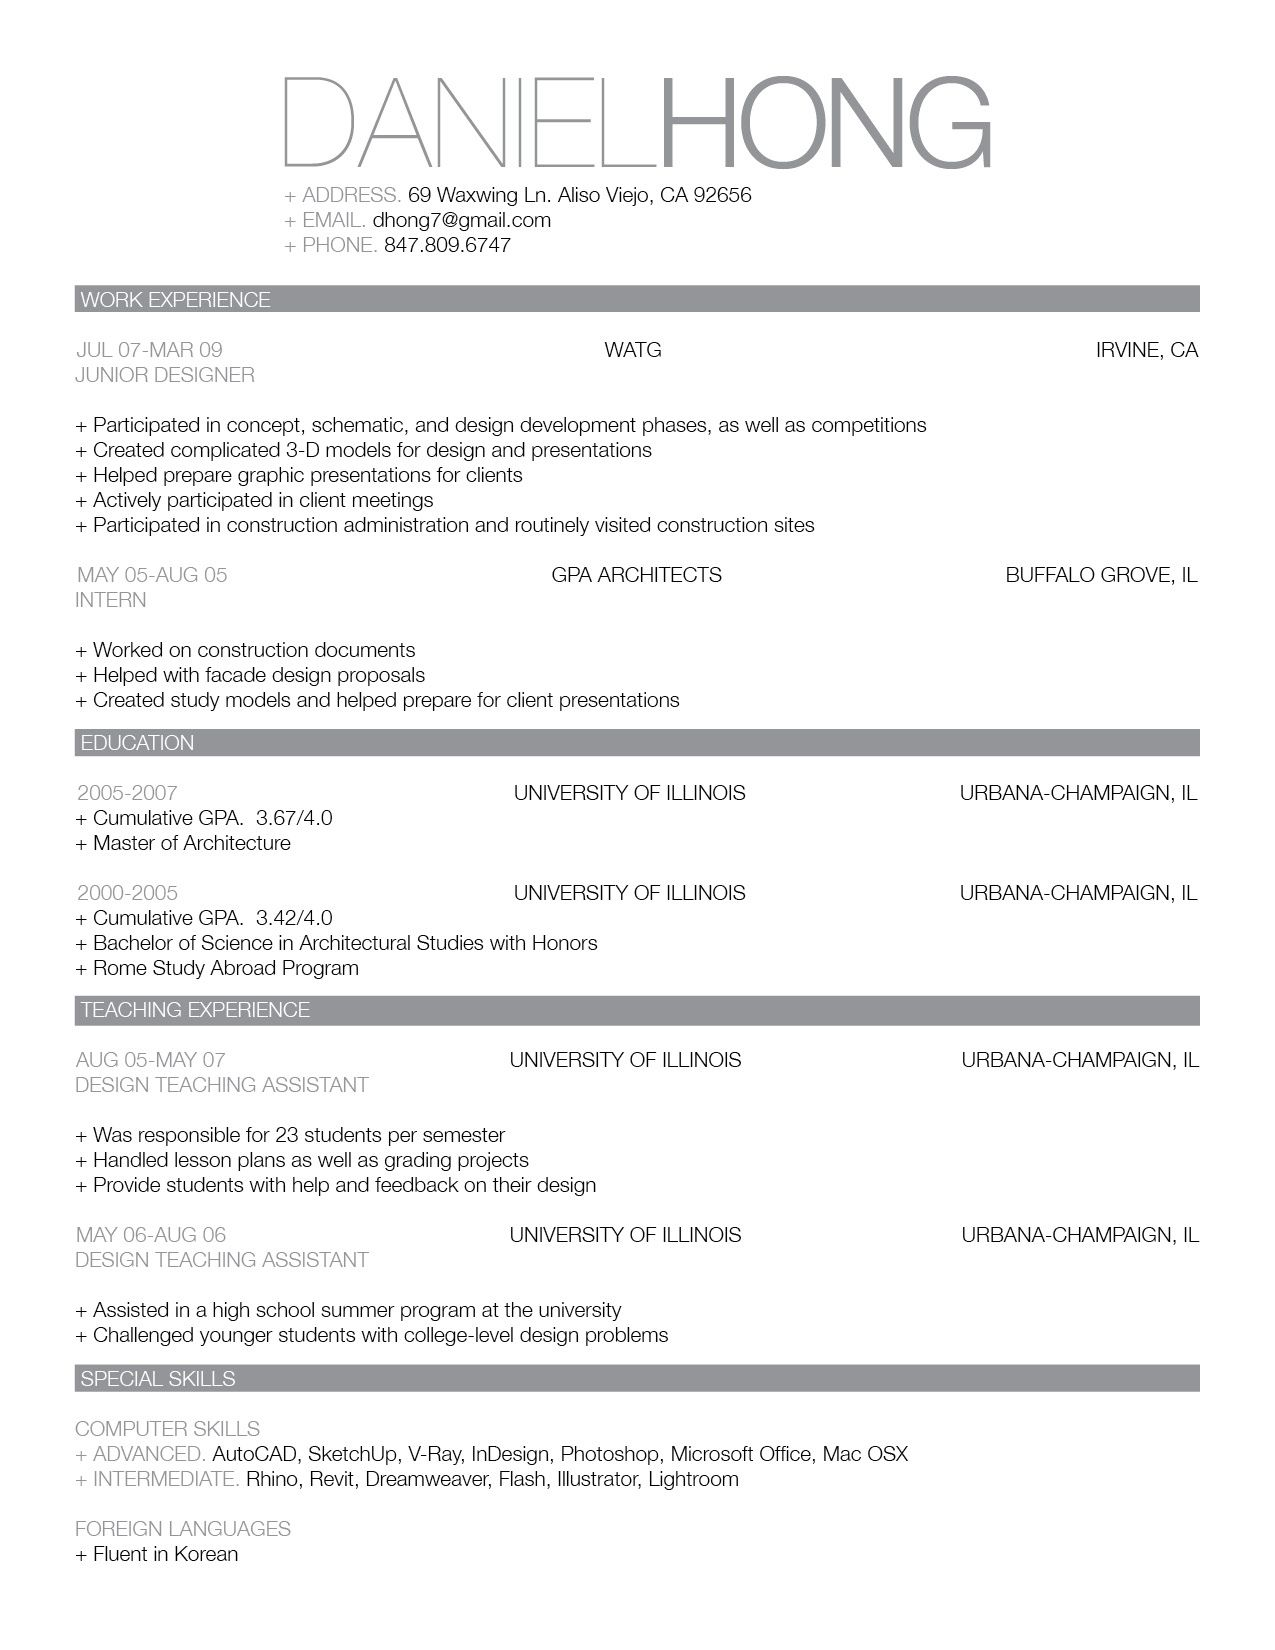 Updated CV And Work Sample Resume Resume Templates And  Easy Resume Templates